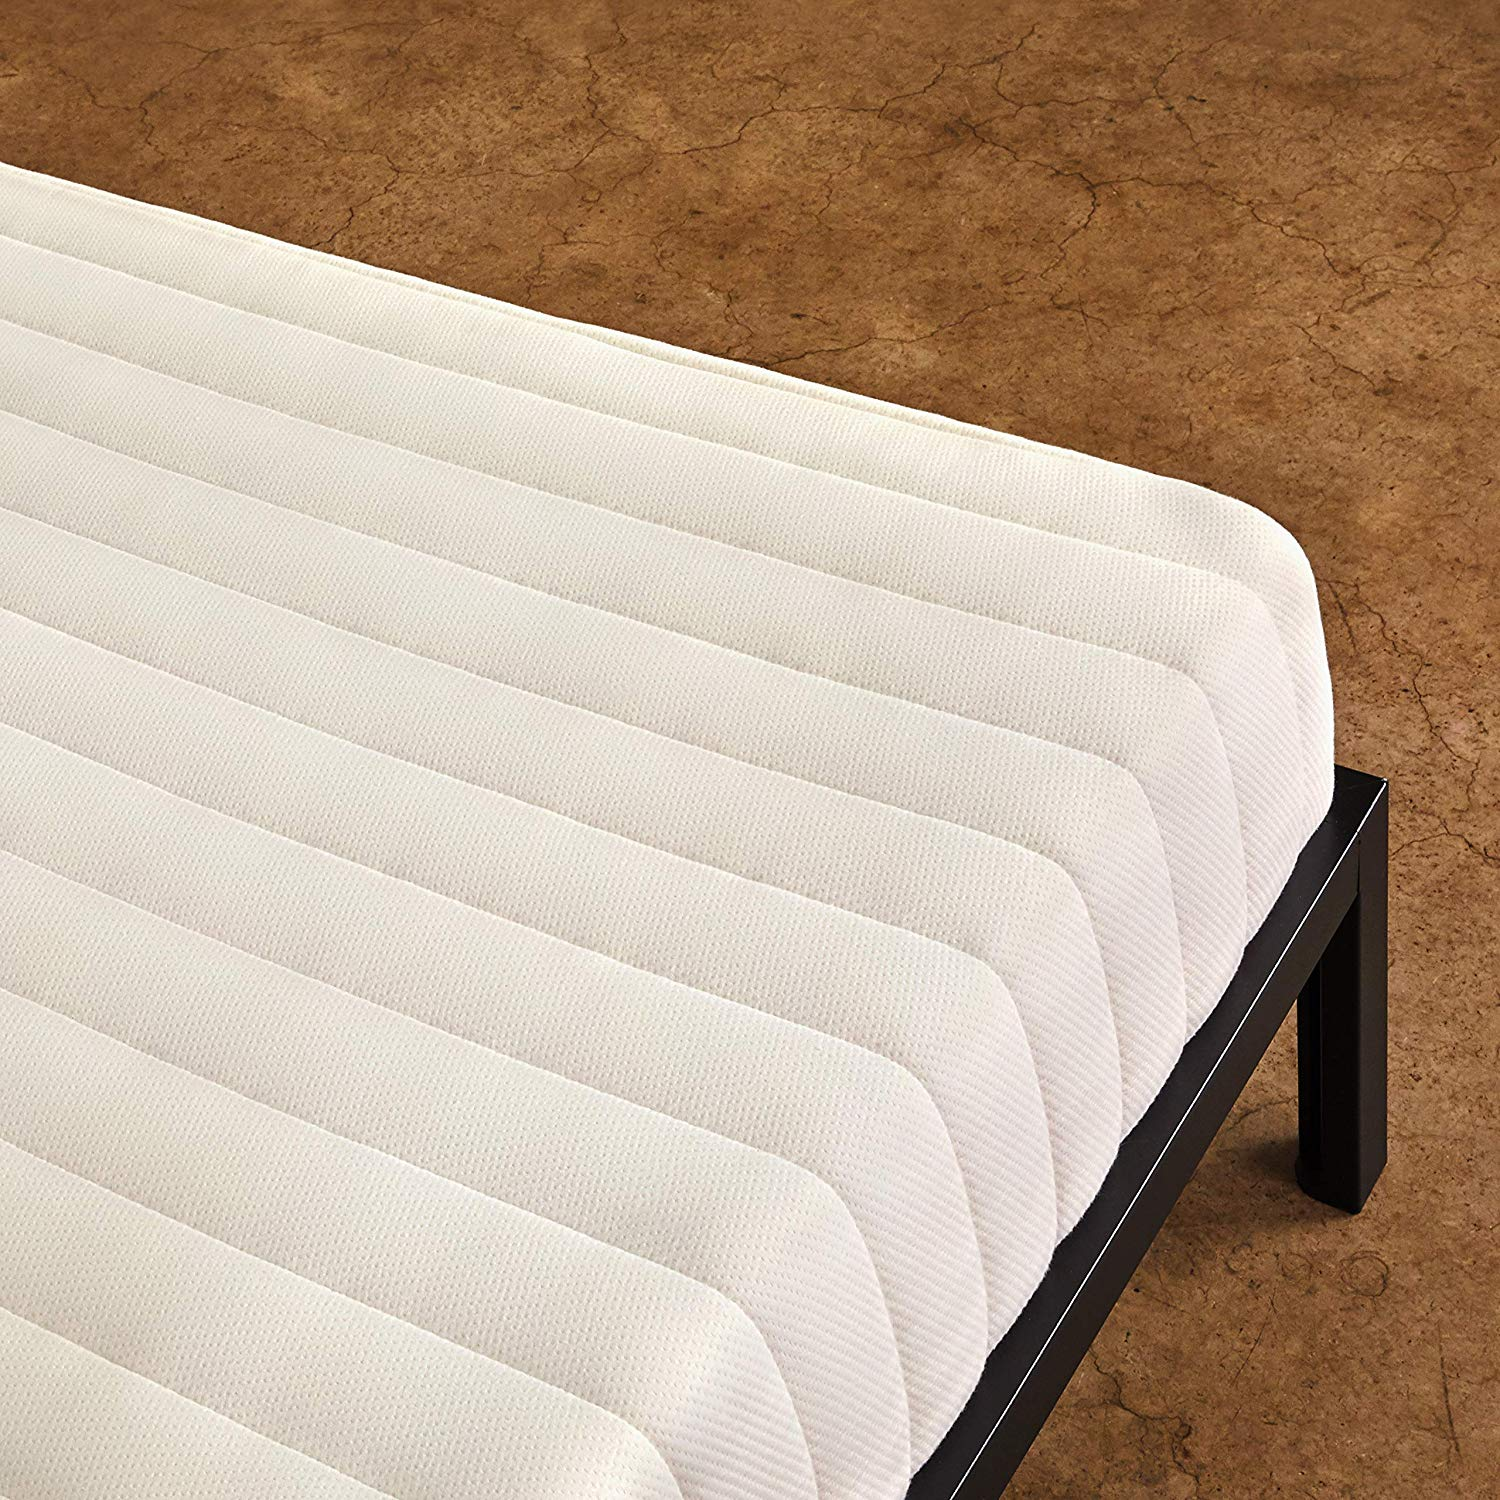 Sleep on Latex Best Organic Mattress Review by www.snoremagazine.com